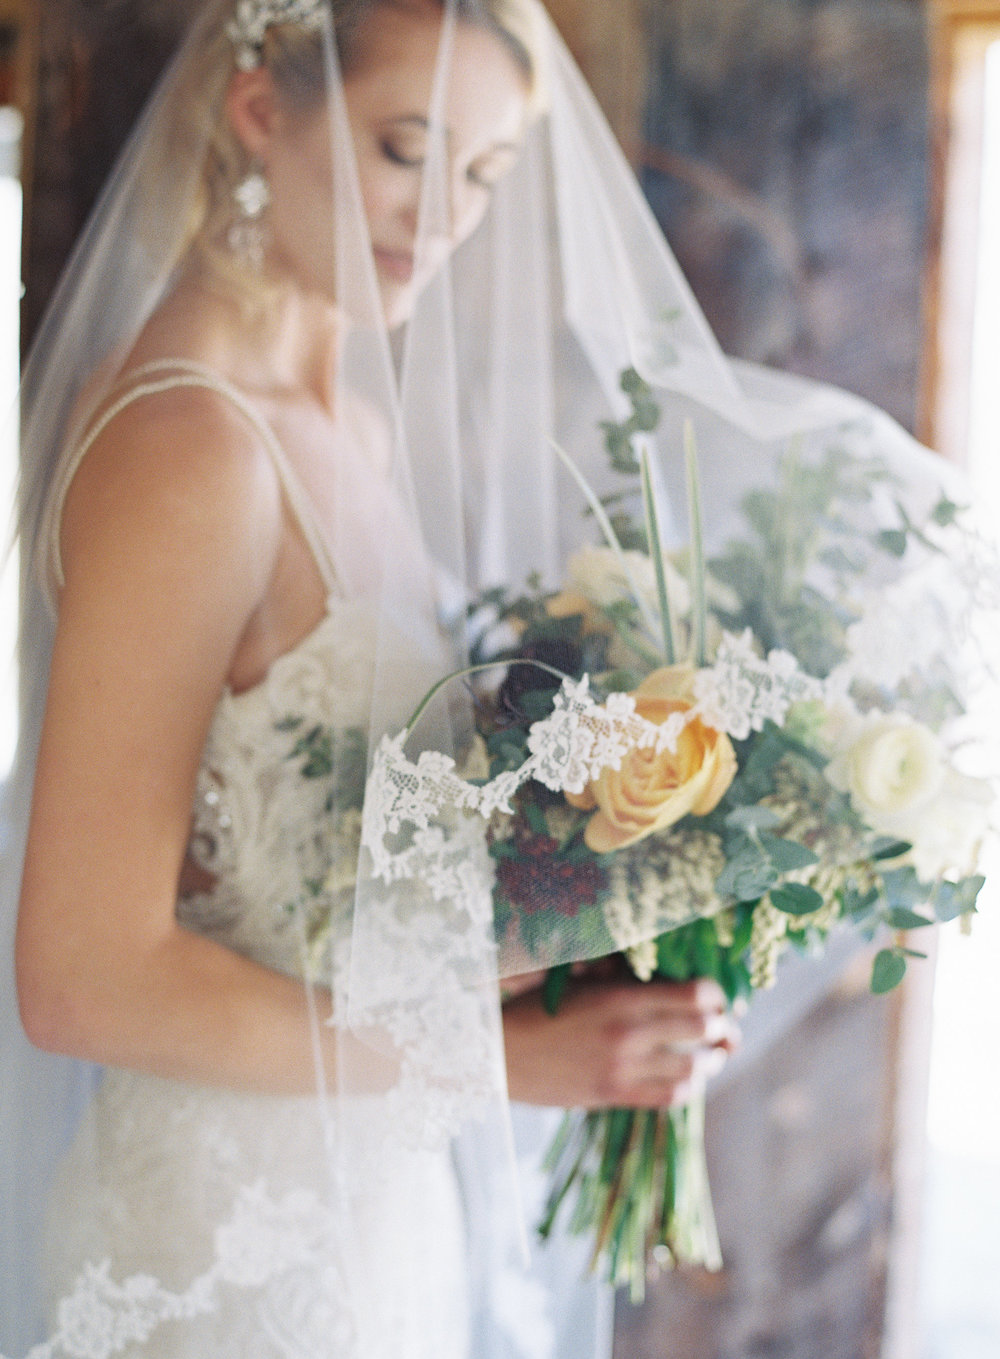 Emma Lea Floral- Winter Wedding Inspiration- Carrie King Photography